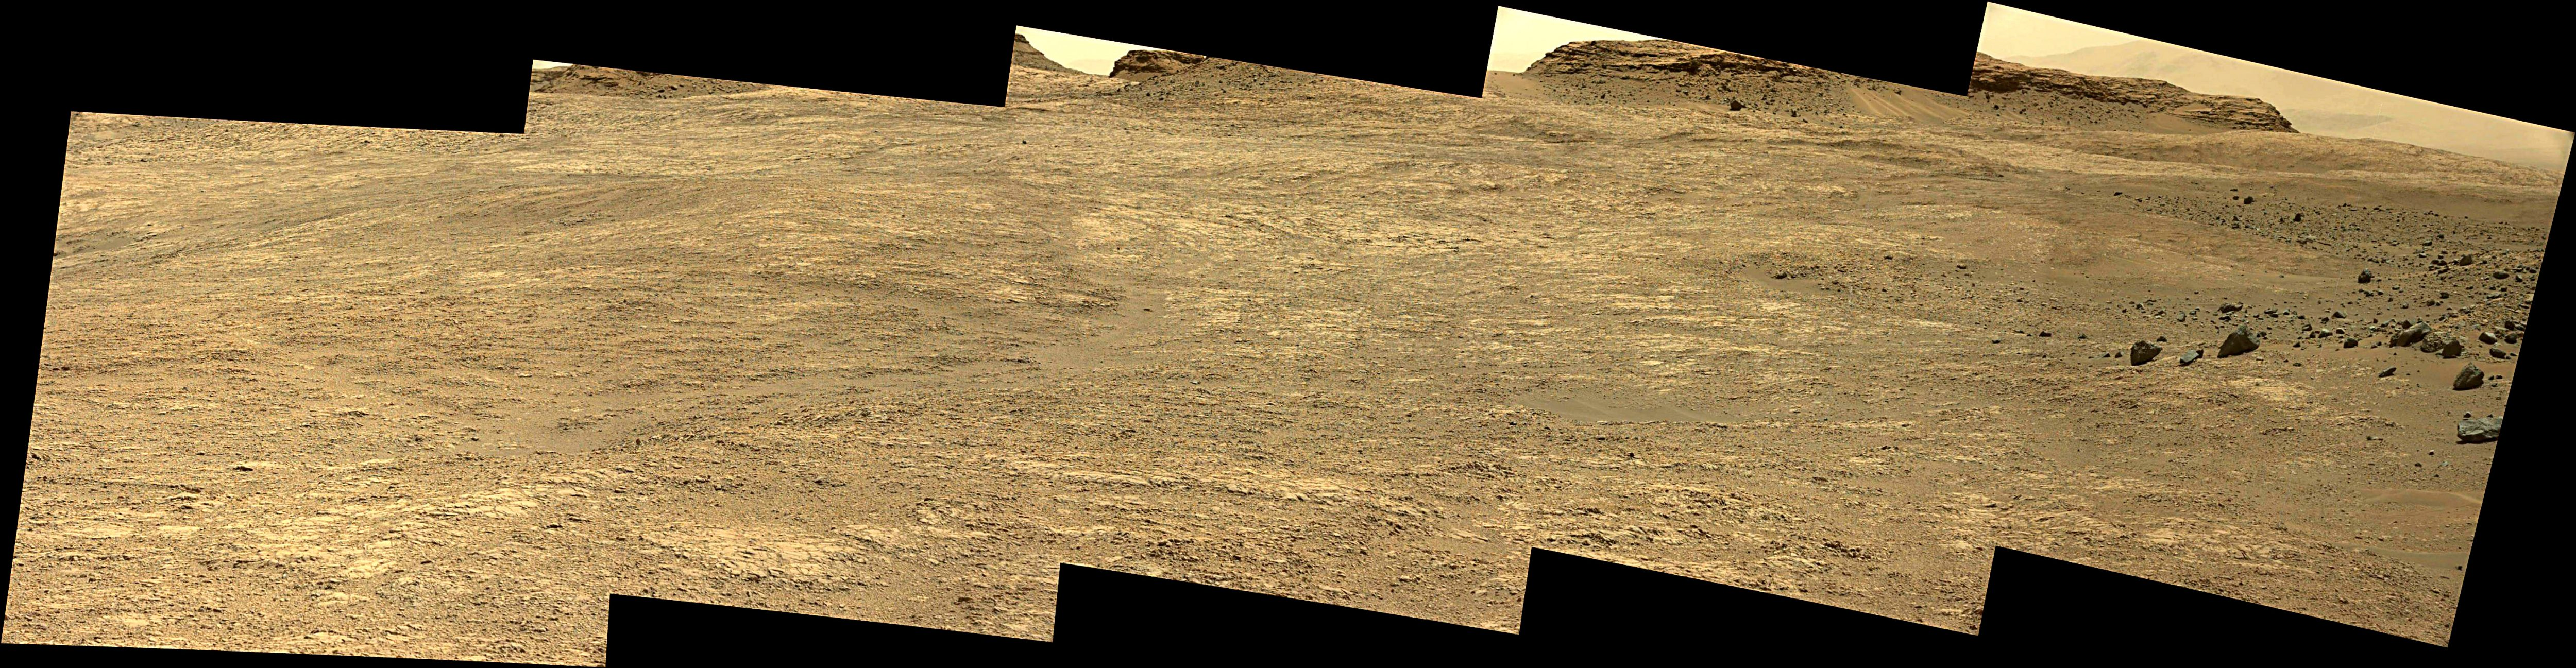 Curiosity Rover Composite View 2e of Mars Sol 1401 – Click to enlarge